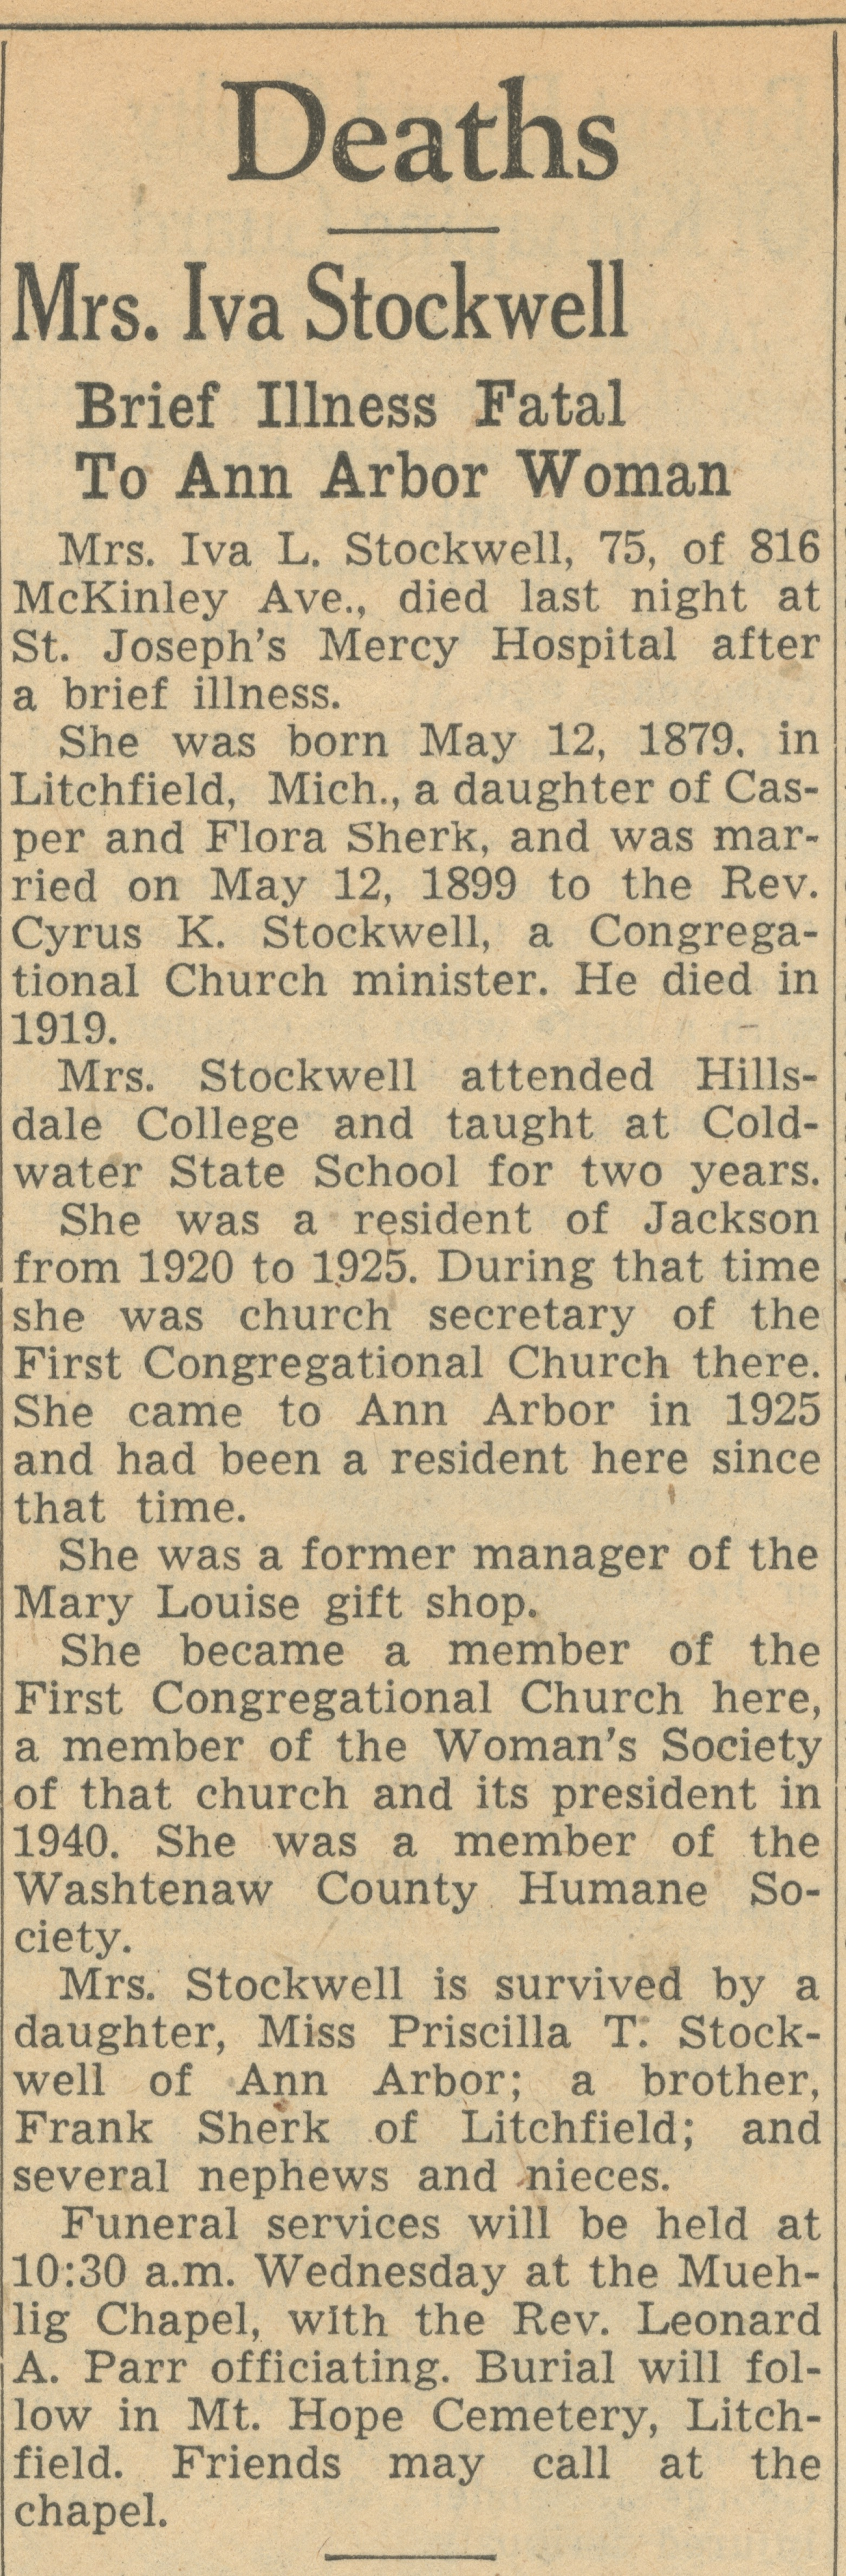 Mrs. Iva Stockwell image